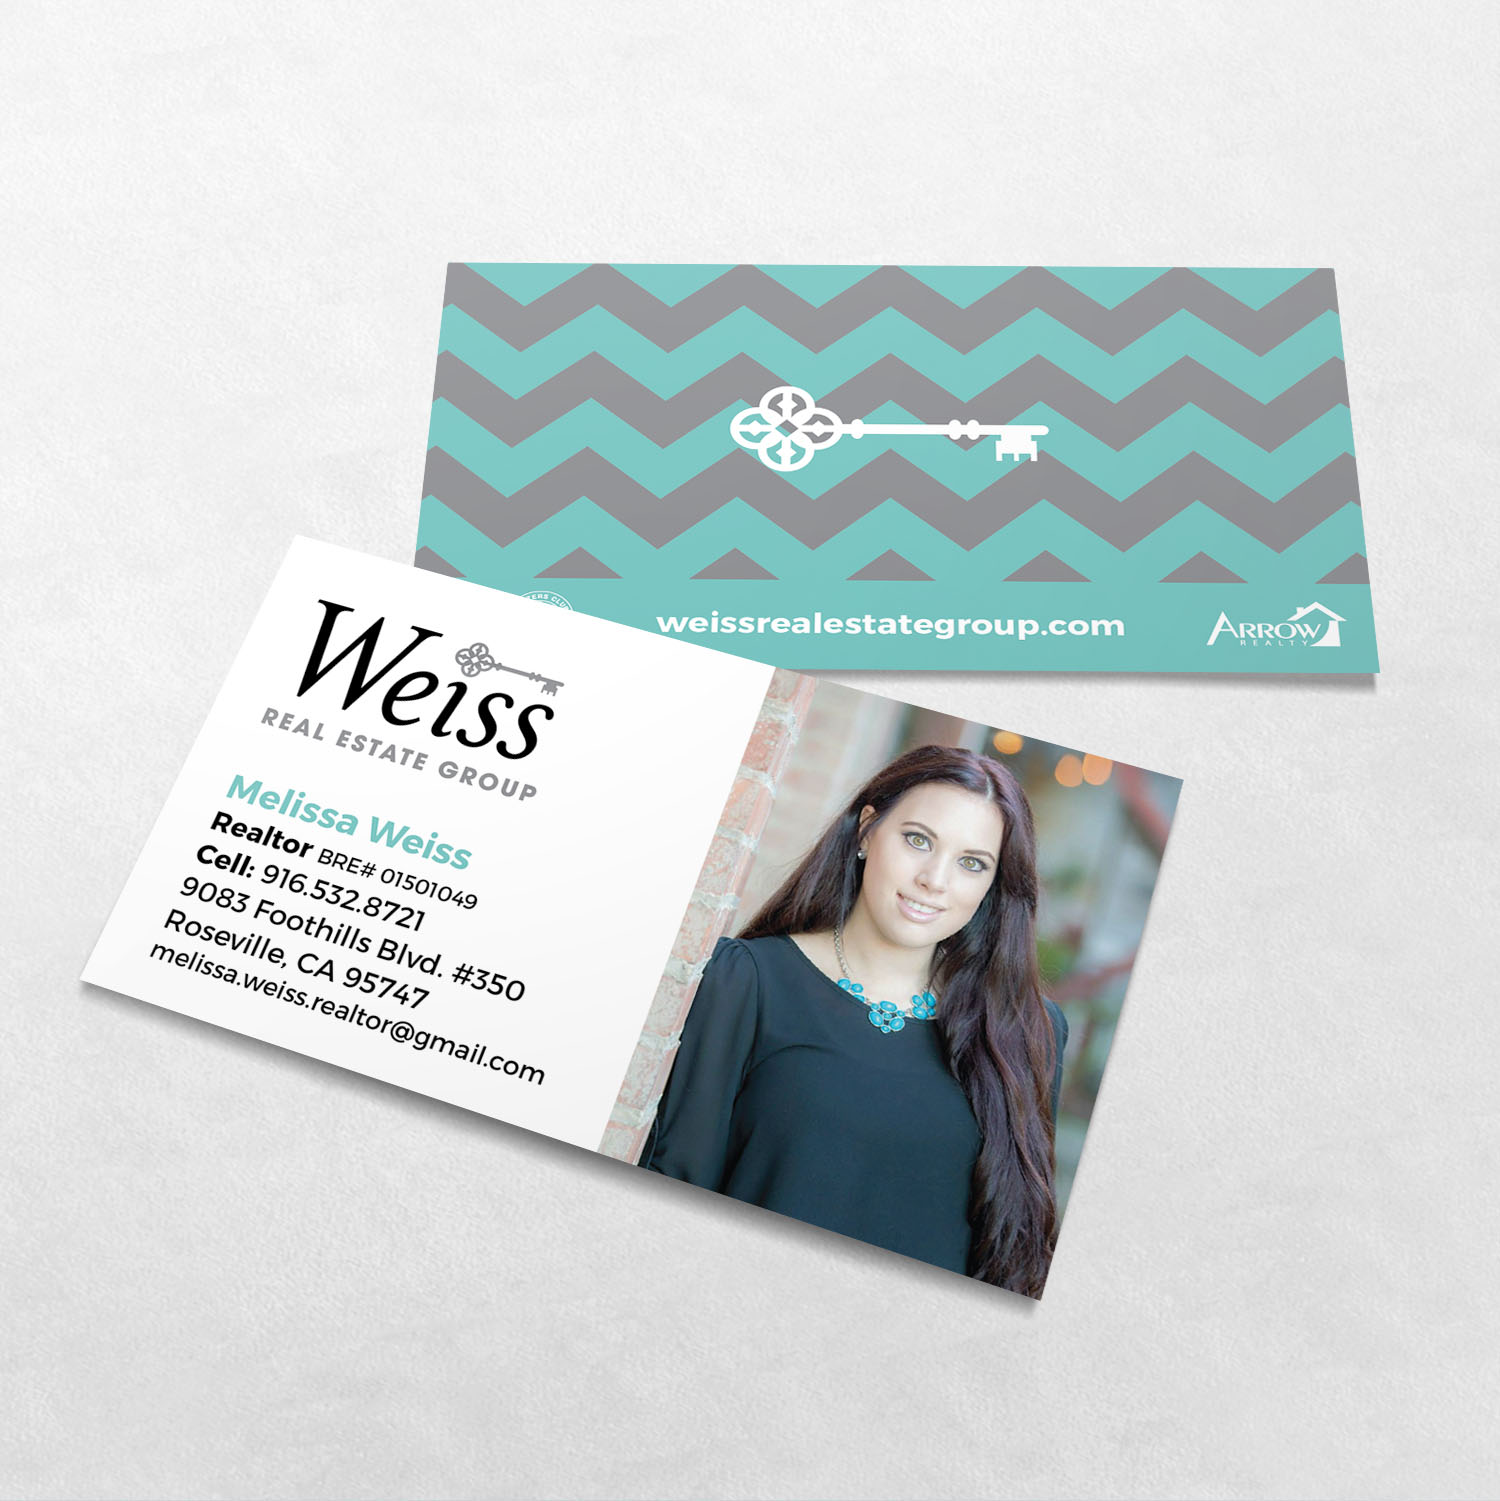 Weiss Real Estate Group Business Card Design